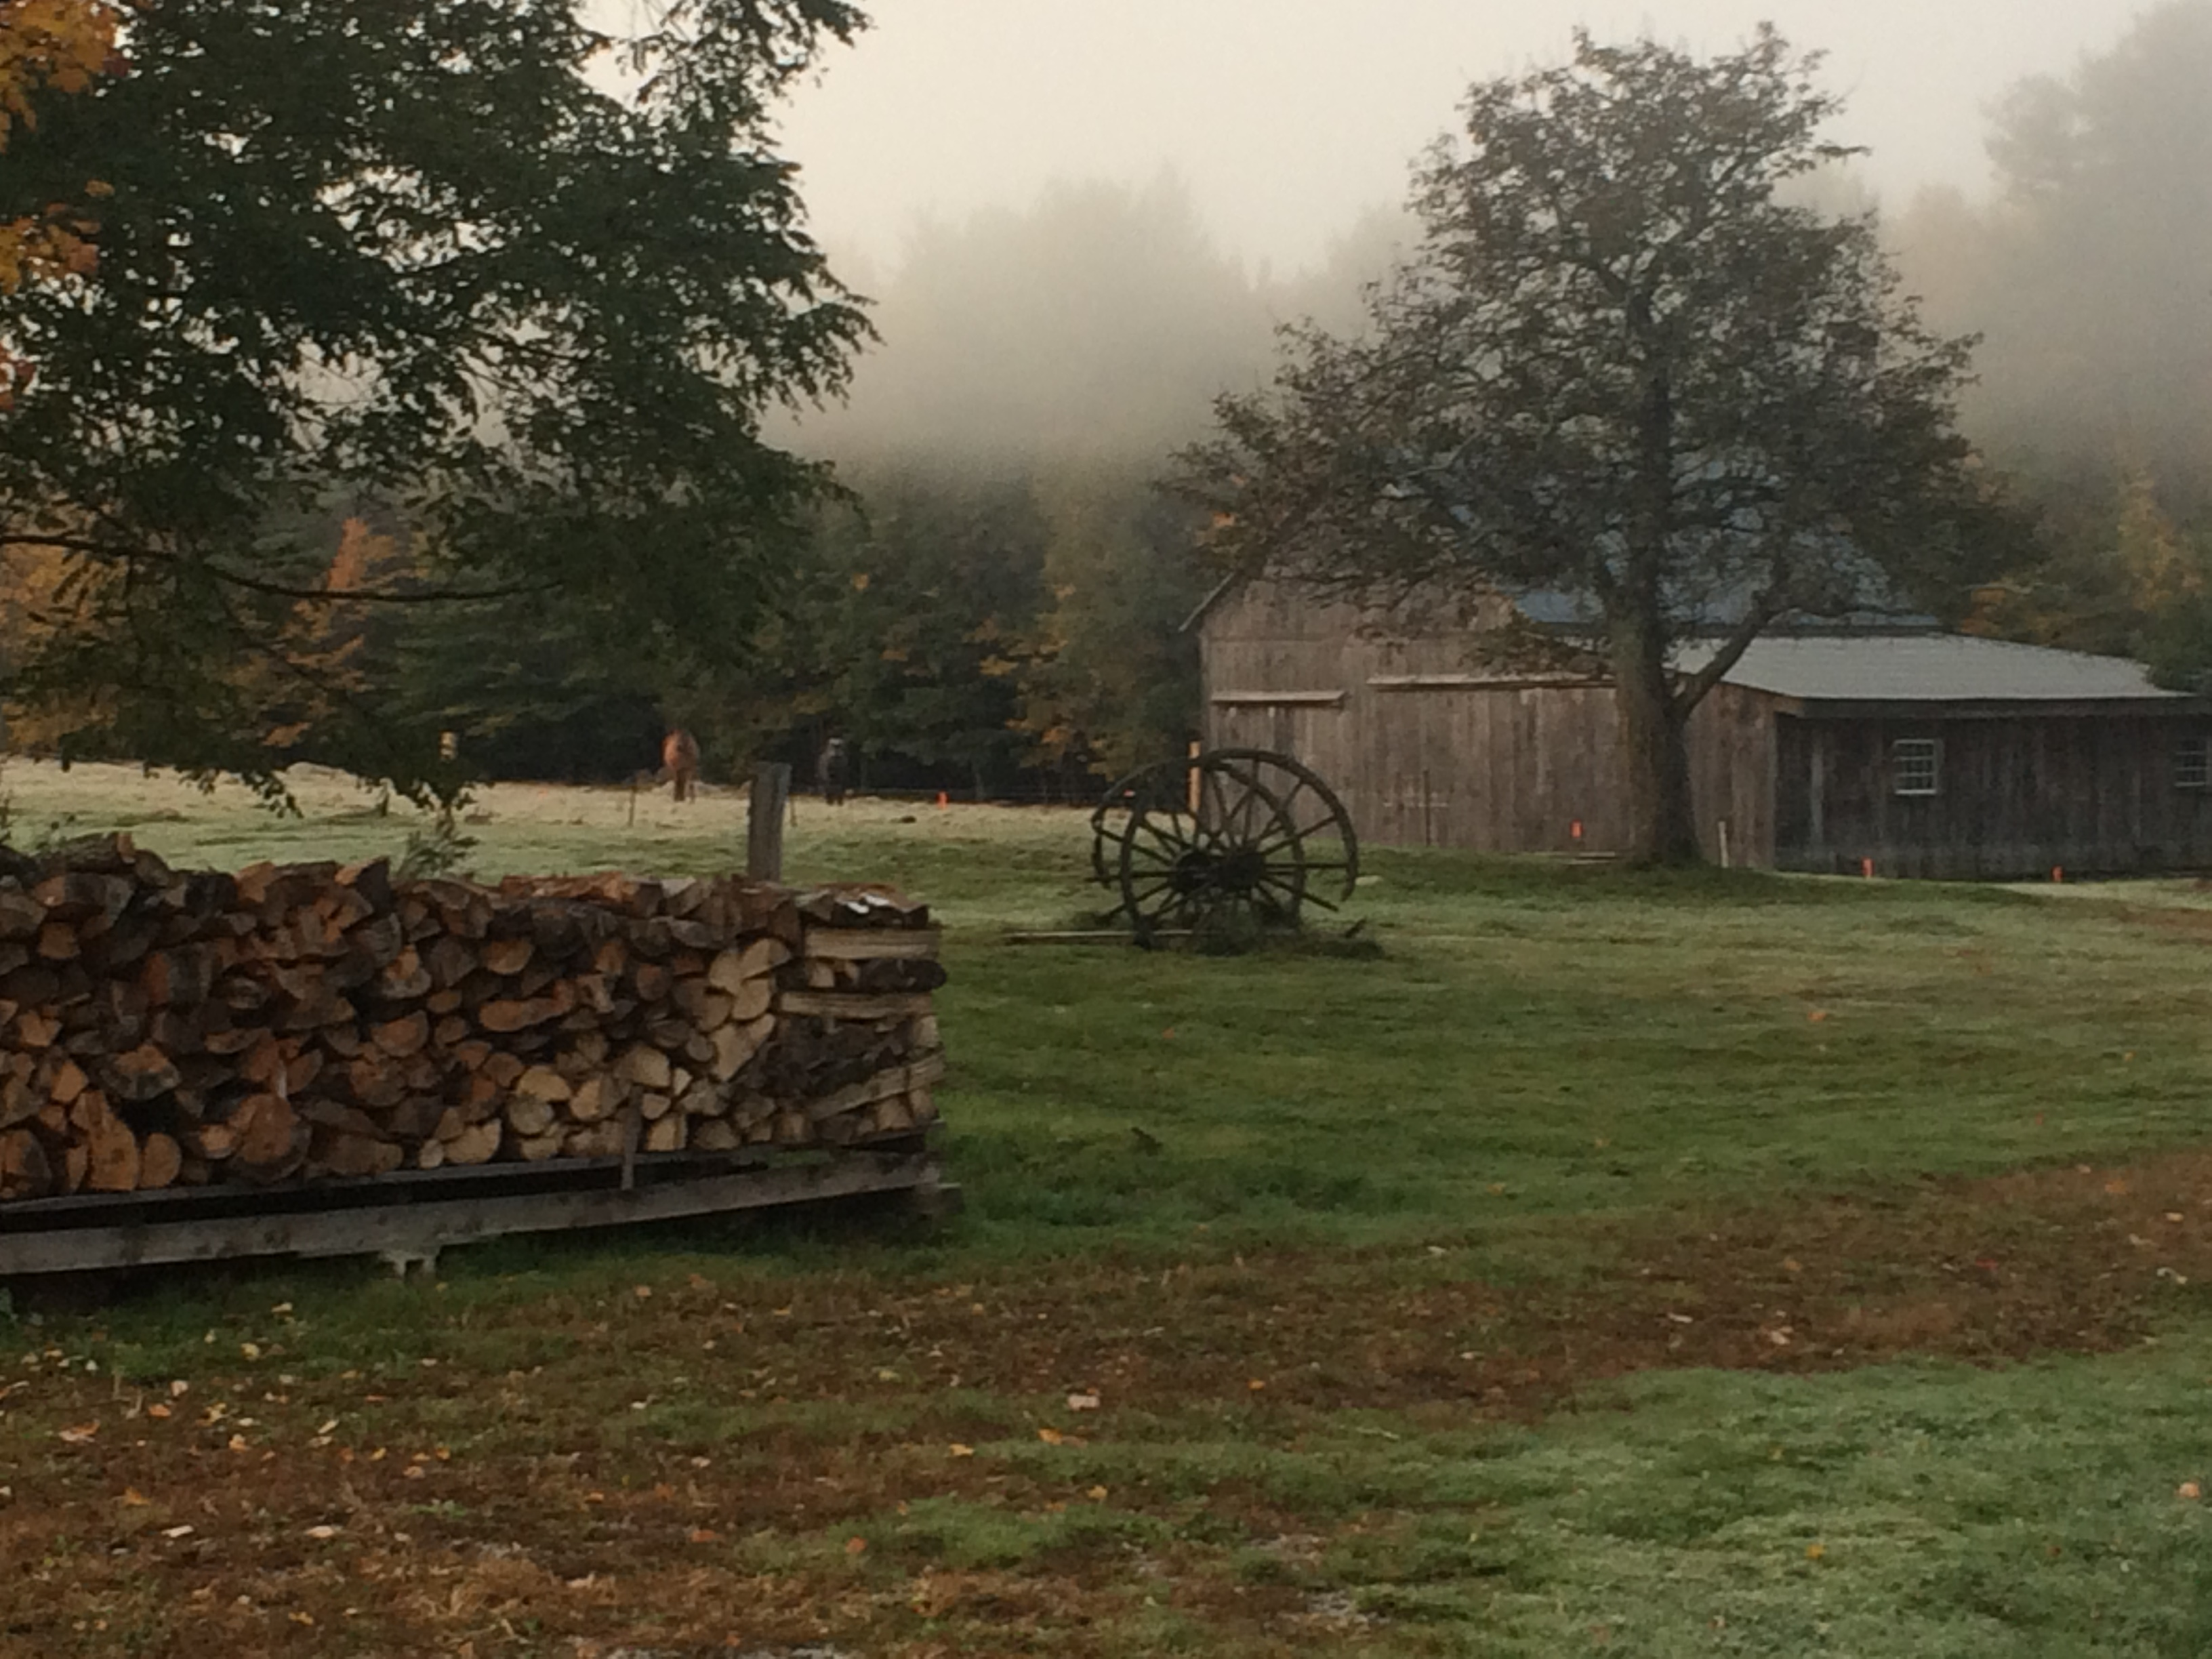 A subtle mist hovers over the cow barn as the morning sun warms the cold evening air.